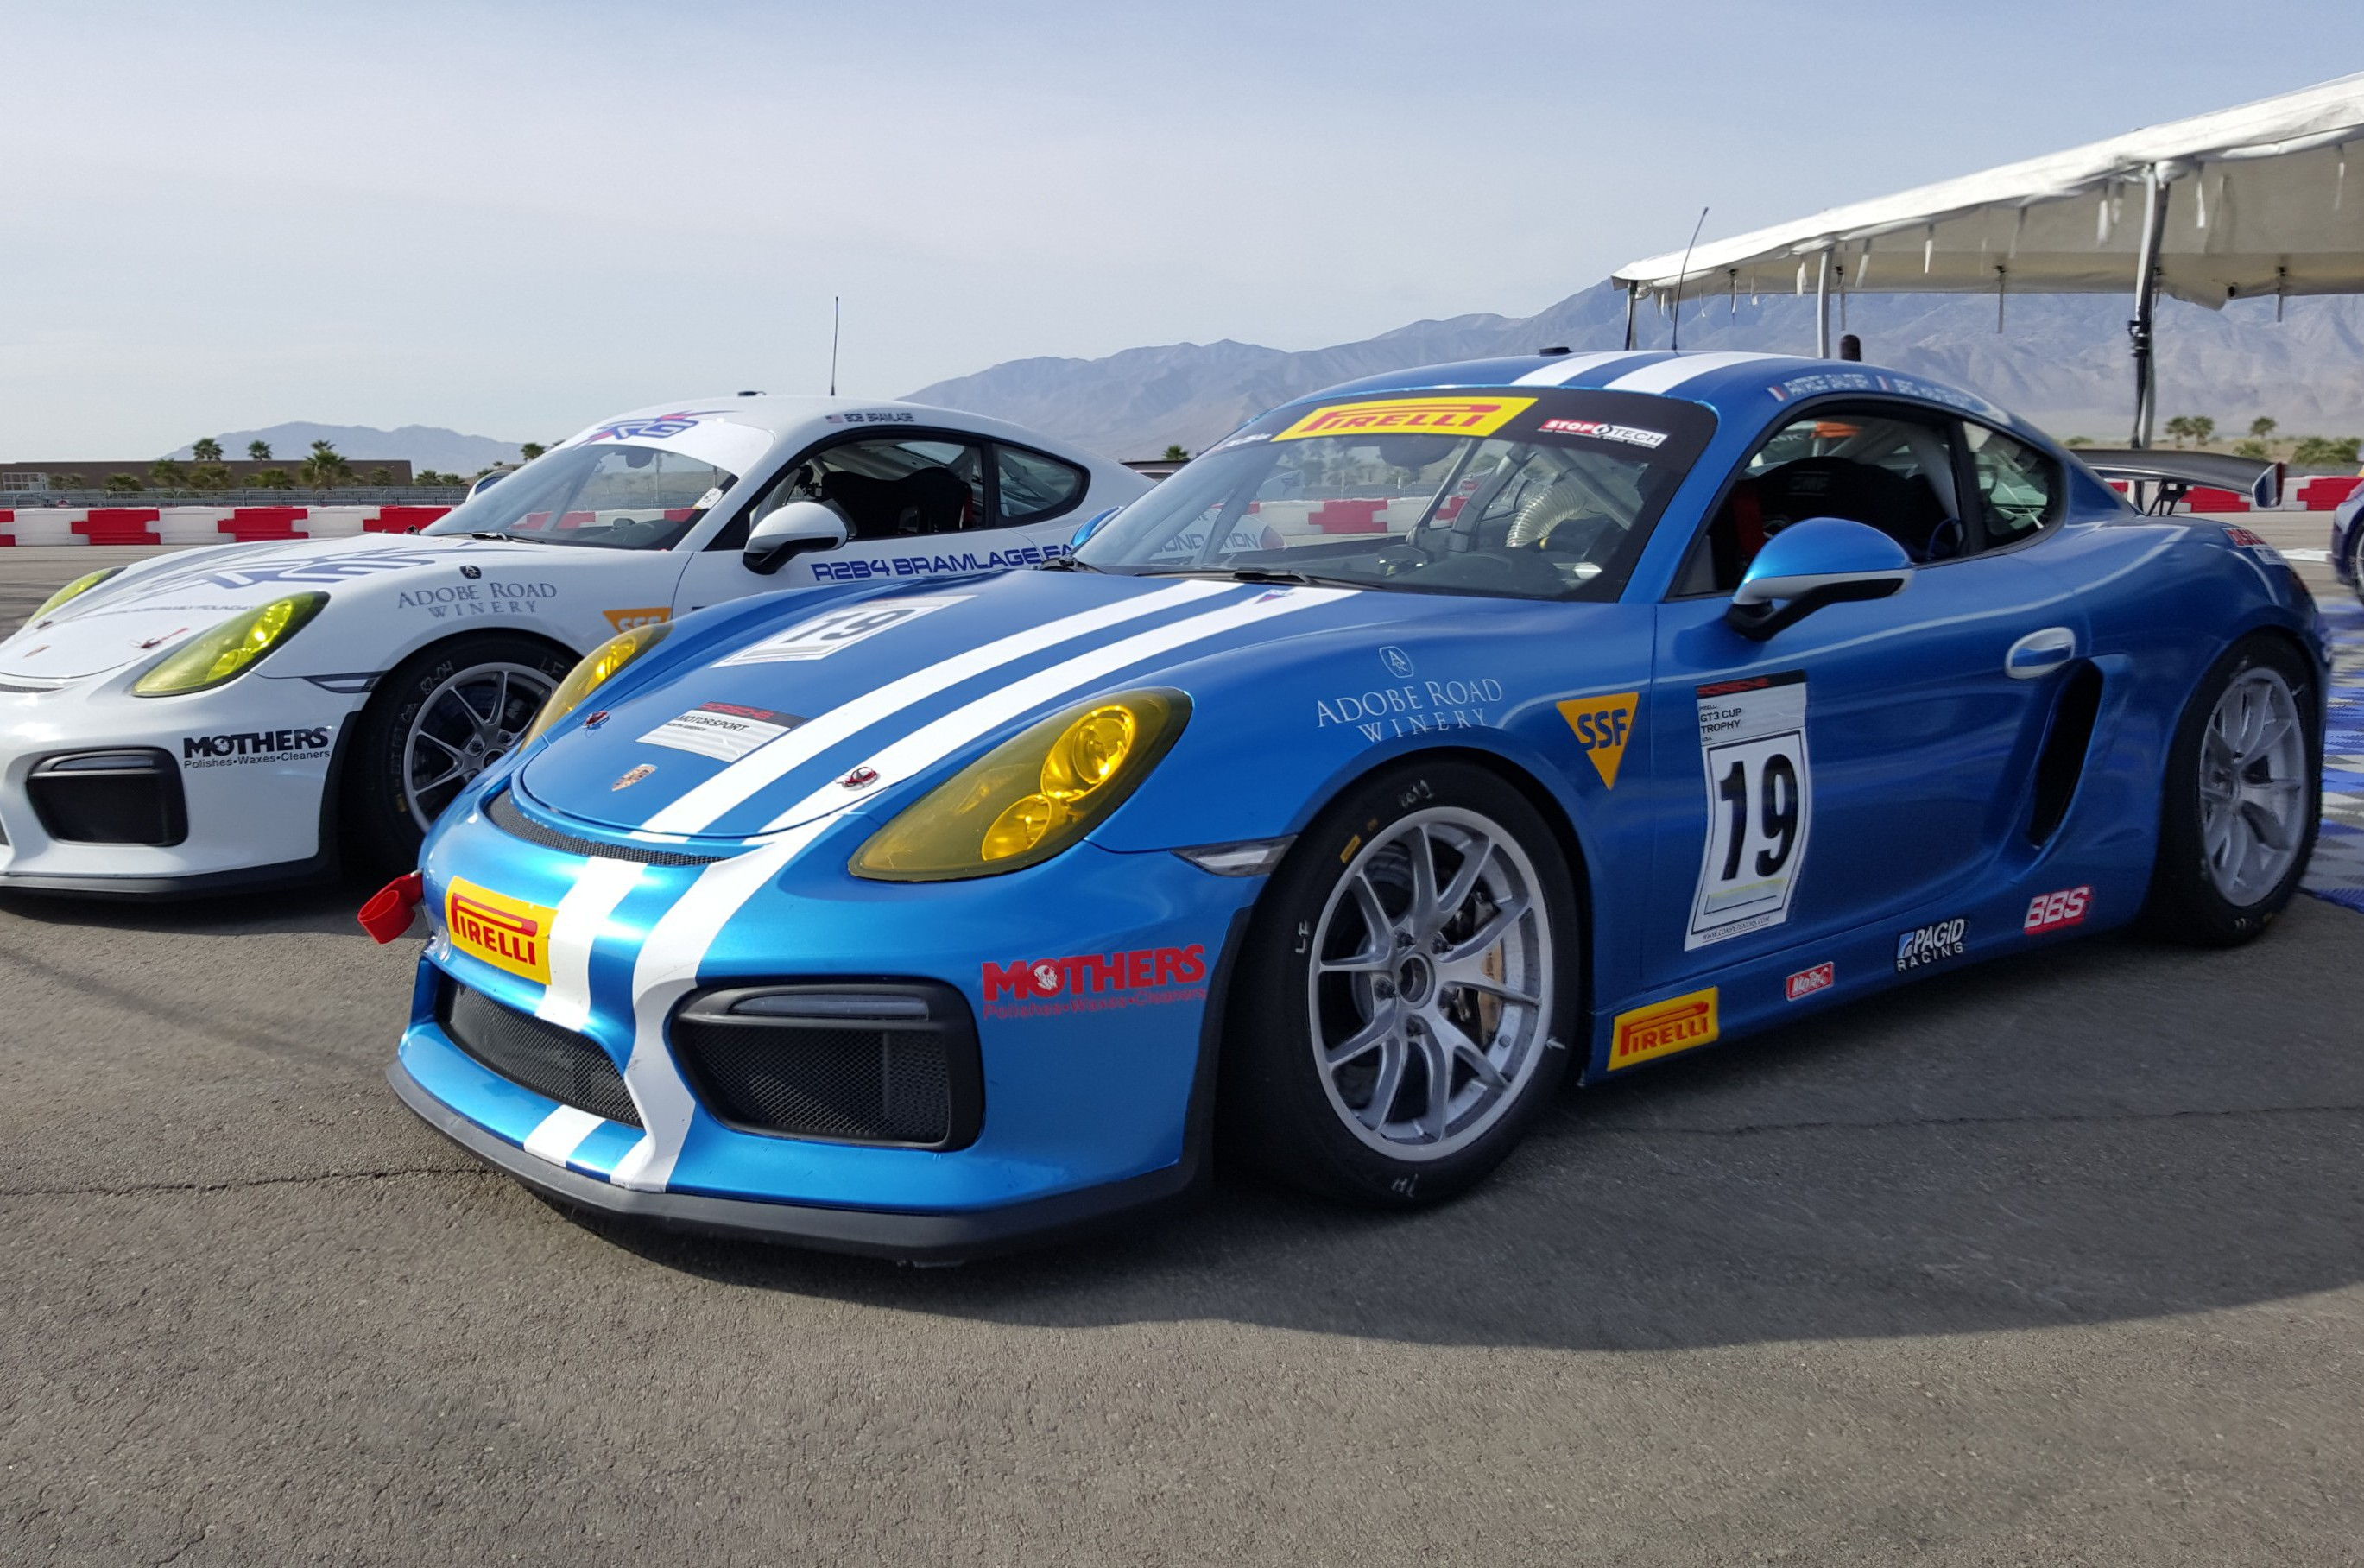 The Racer's Group Plans on Another Podium at the Pirelli GT3 Cup Trophy USA – Thermal